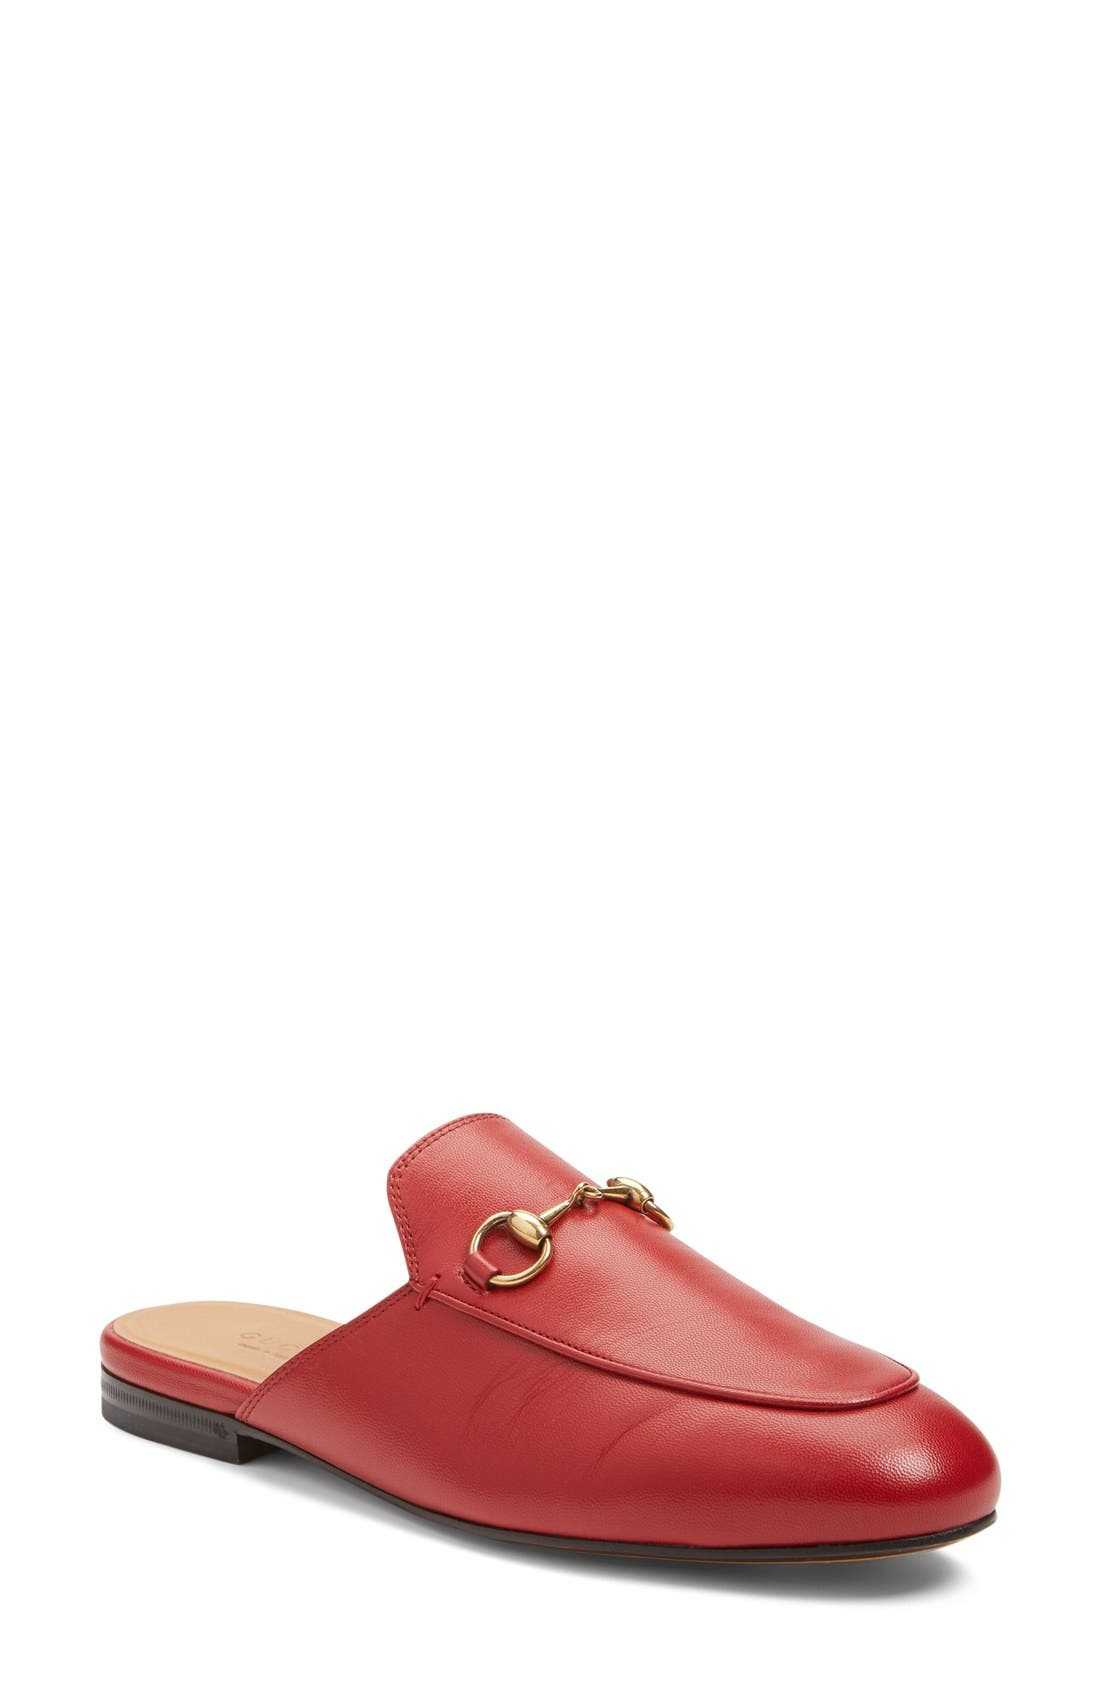 Alternate Image 1 Selected - Gucci Princetown Loafer Mule (Women)